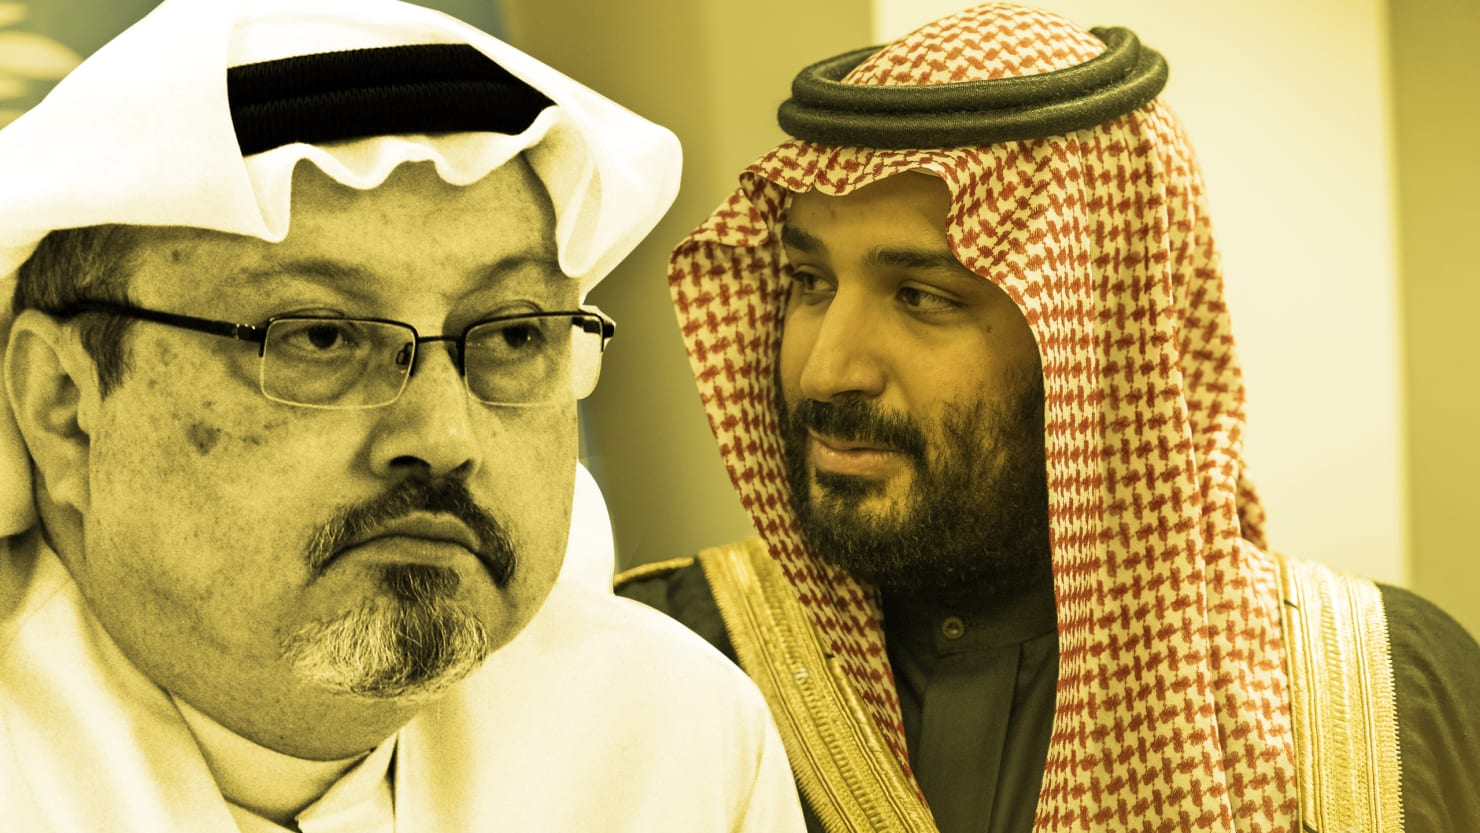 The Real Reasons Saudi Crown Prince Mohammed bin Salman Wanted Khashoggi 'Dead or Alive'